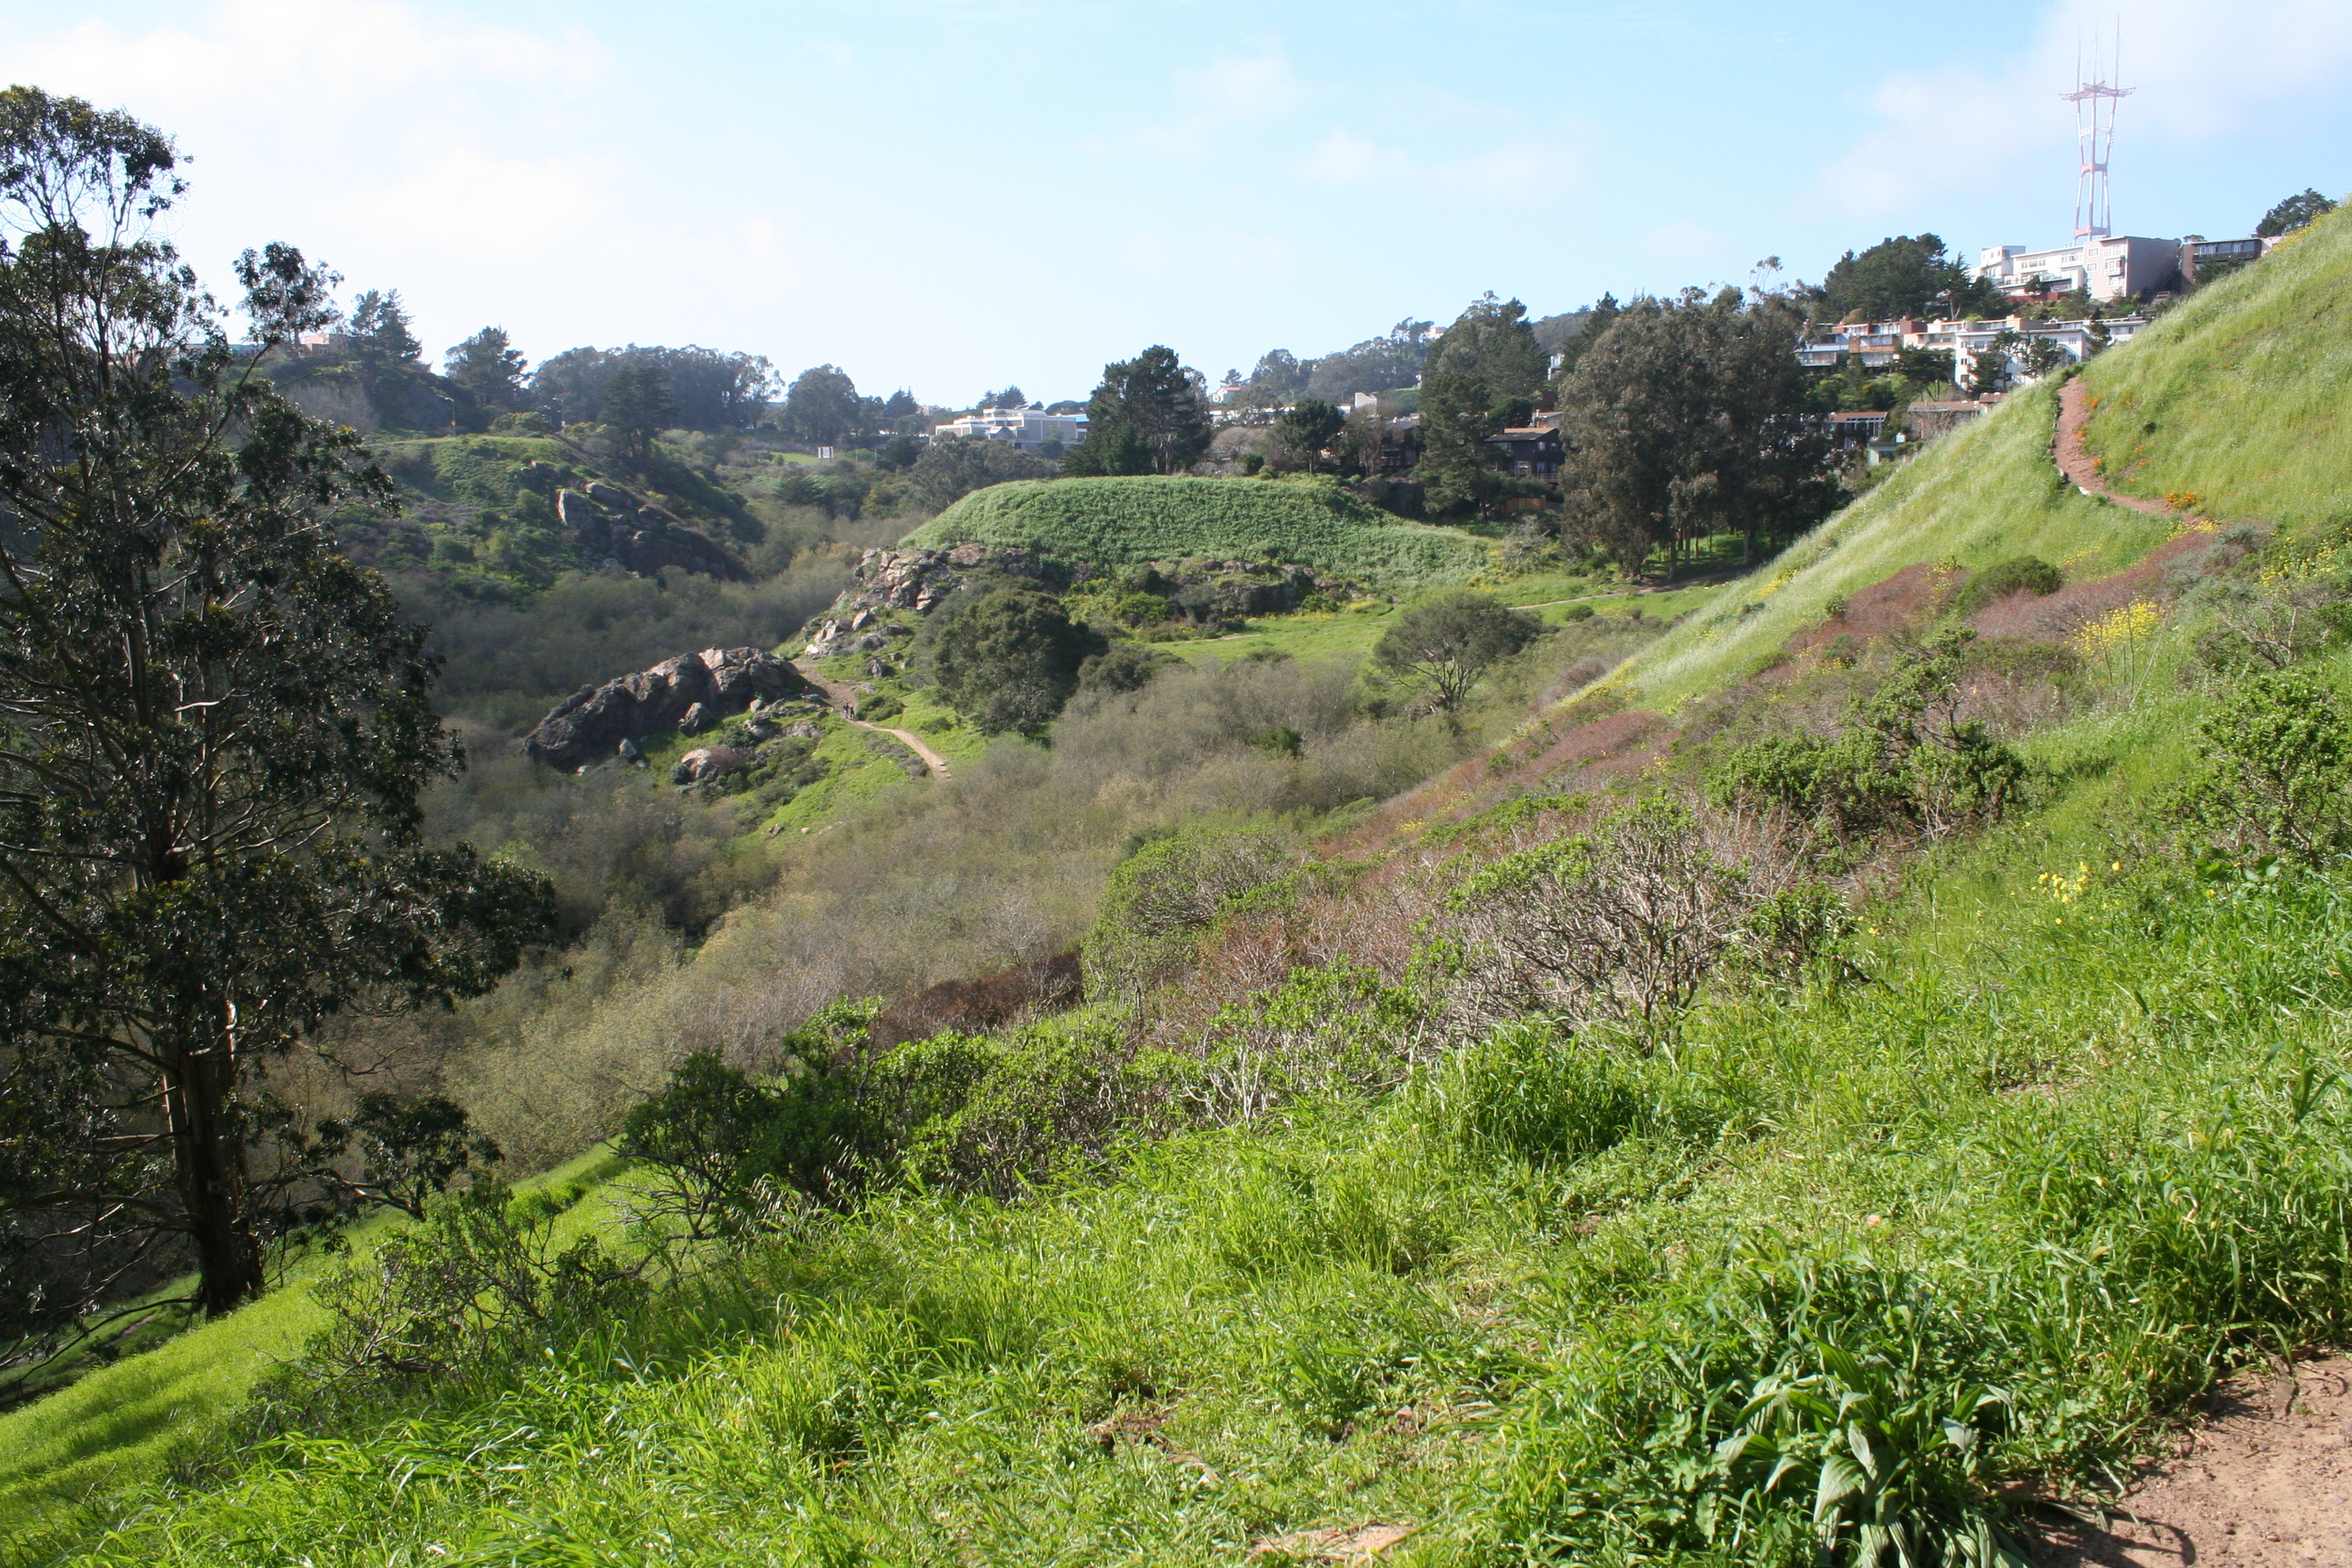 Glen Canyon Park is a 70-acre outdoor recreational area featuring a deep natural canyon with walking paths leading up into Diamond Heights.